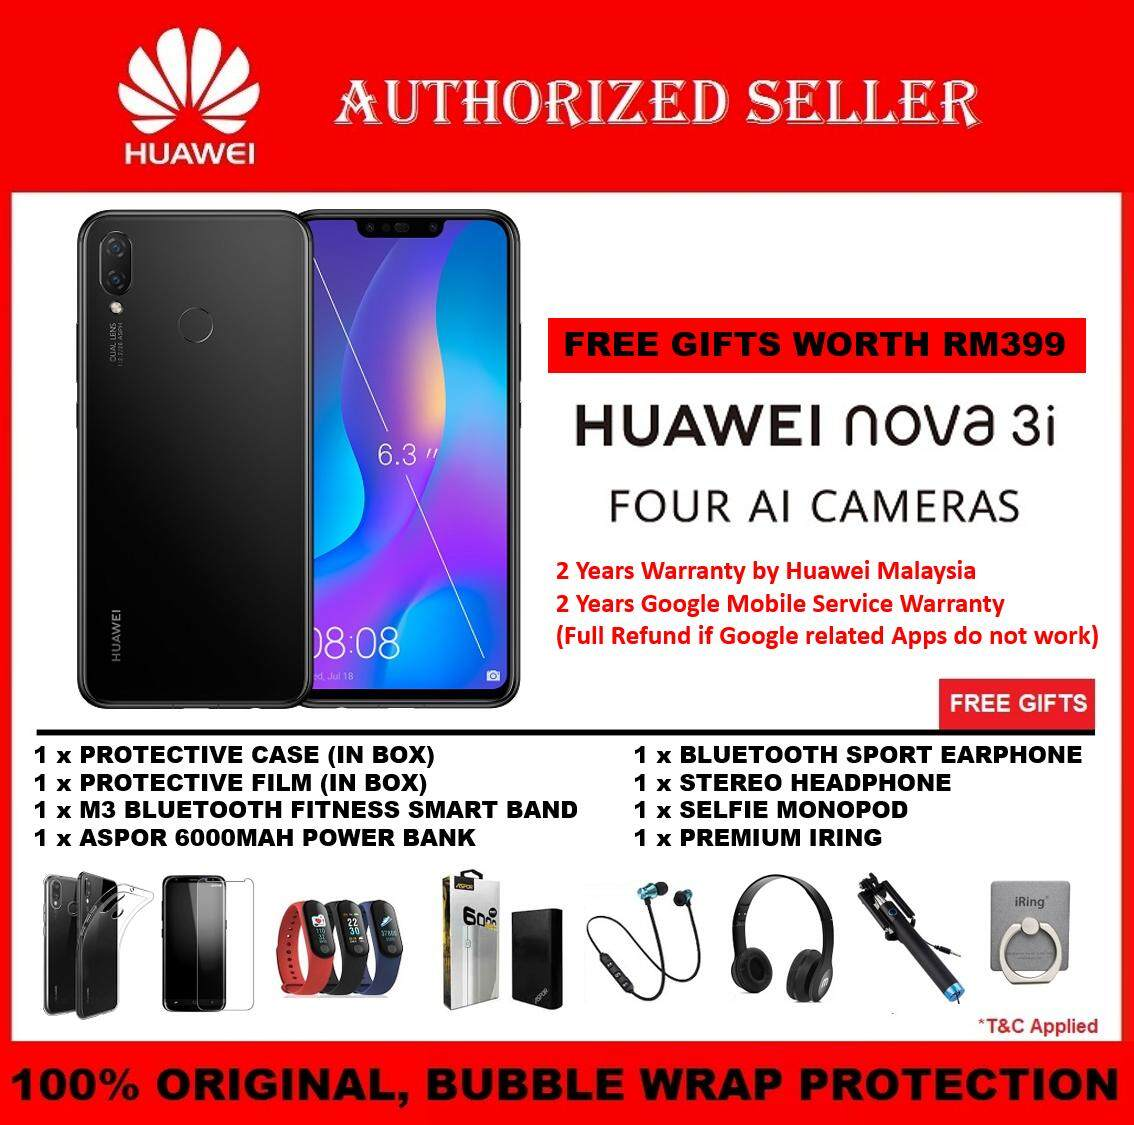 Huawei Mobile Phones & Accessories Best Price In Malaysia